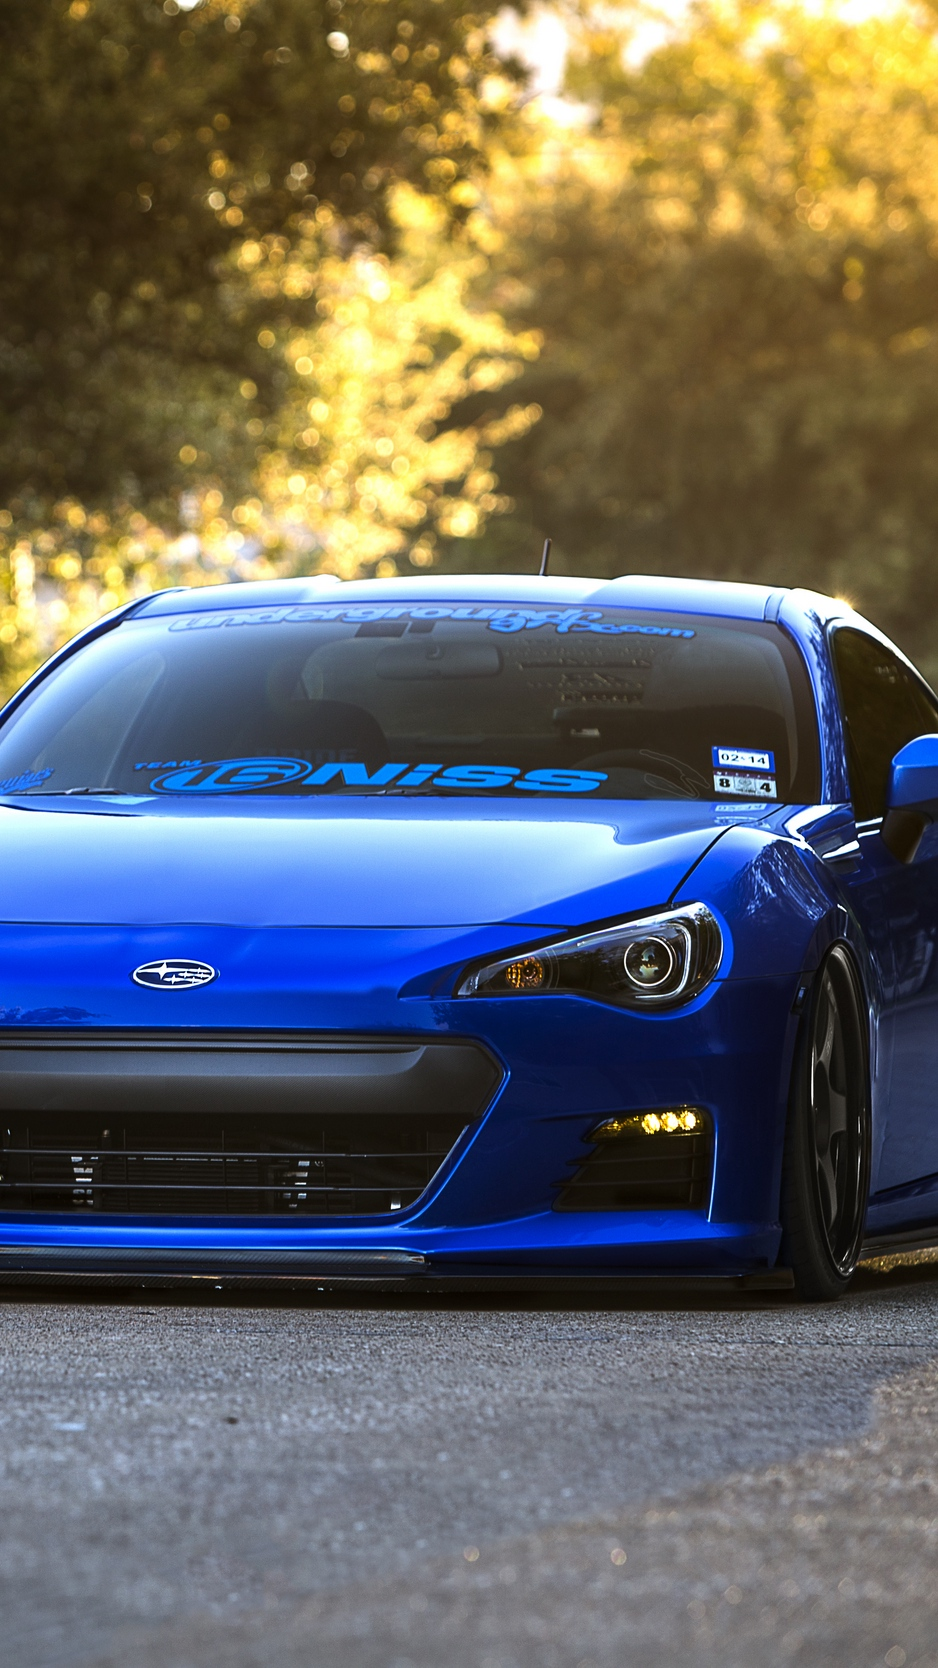 Subaru Brz Iphone Wallpaper Posted By Michelle Anderson